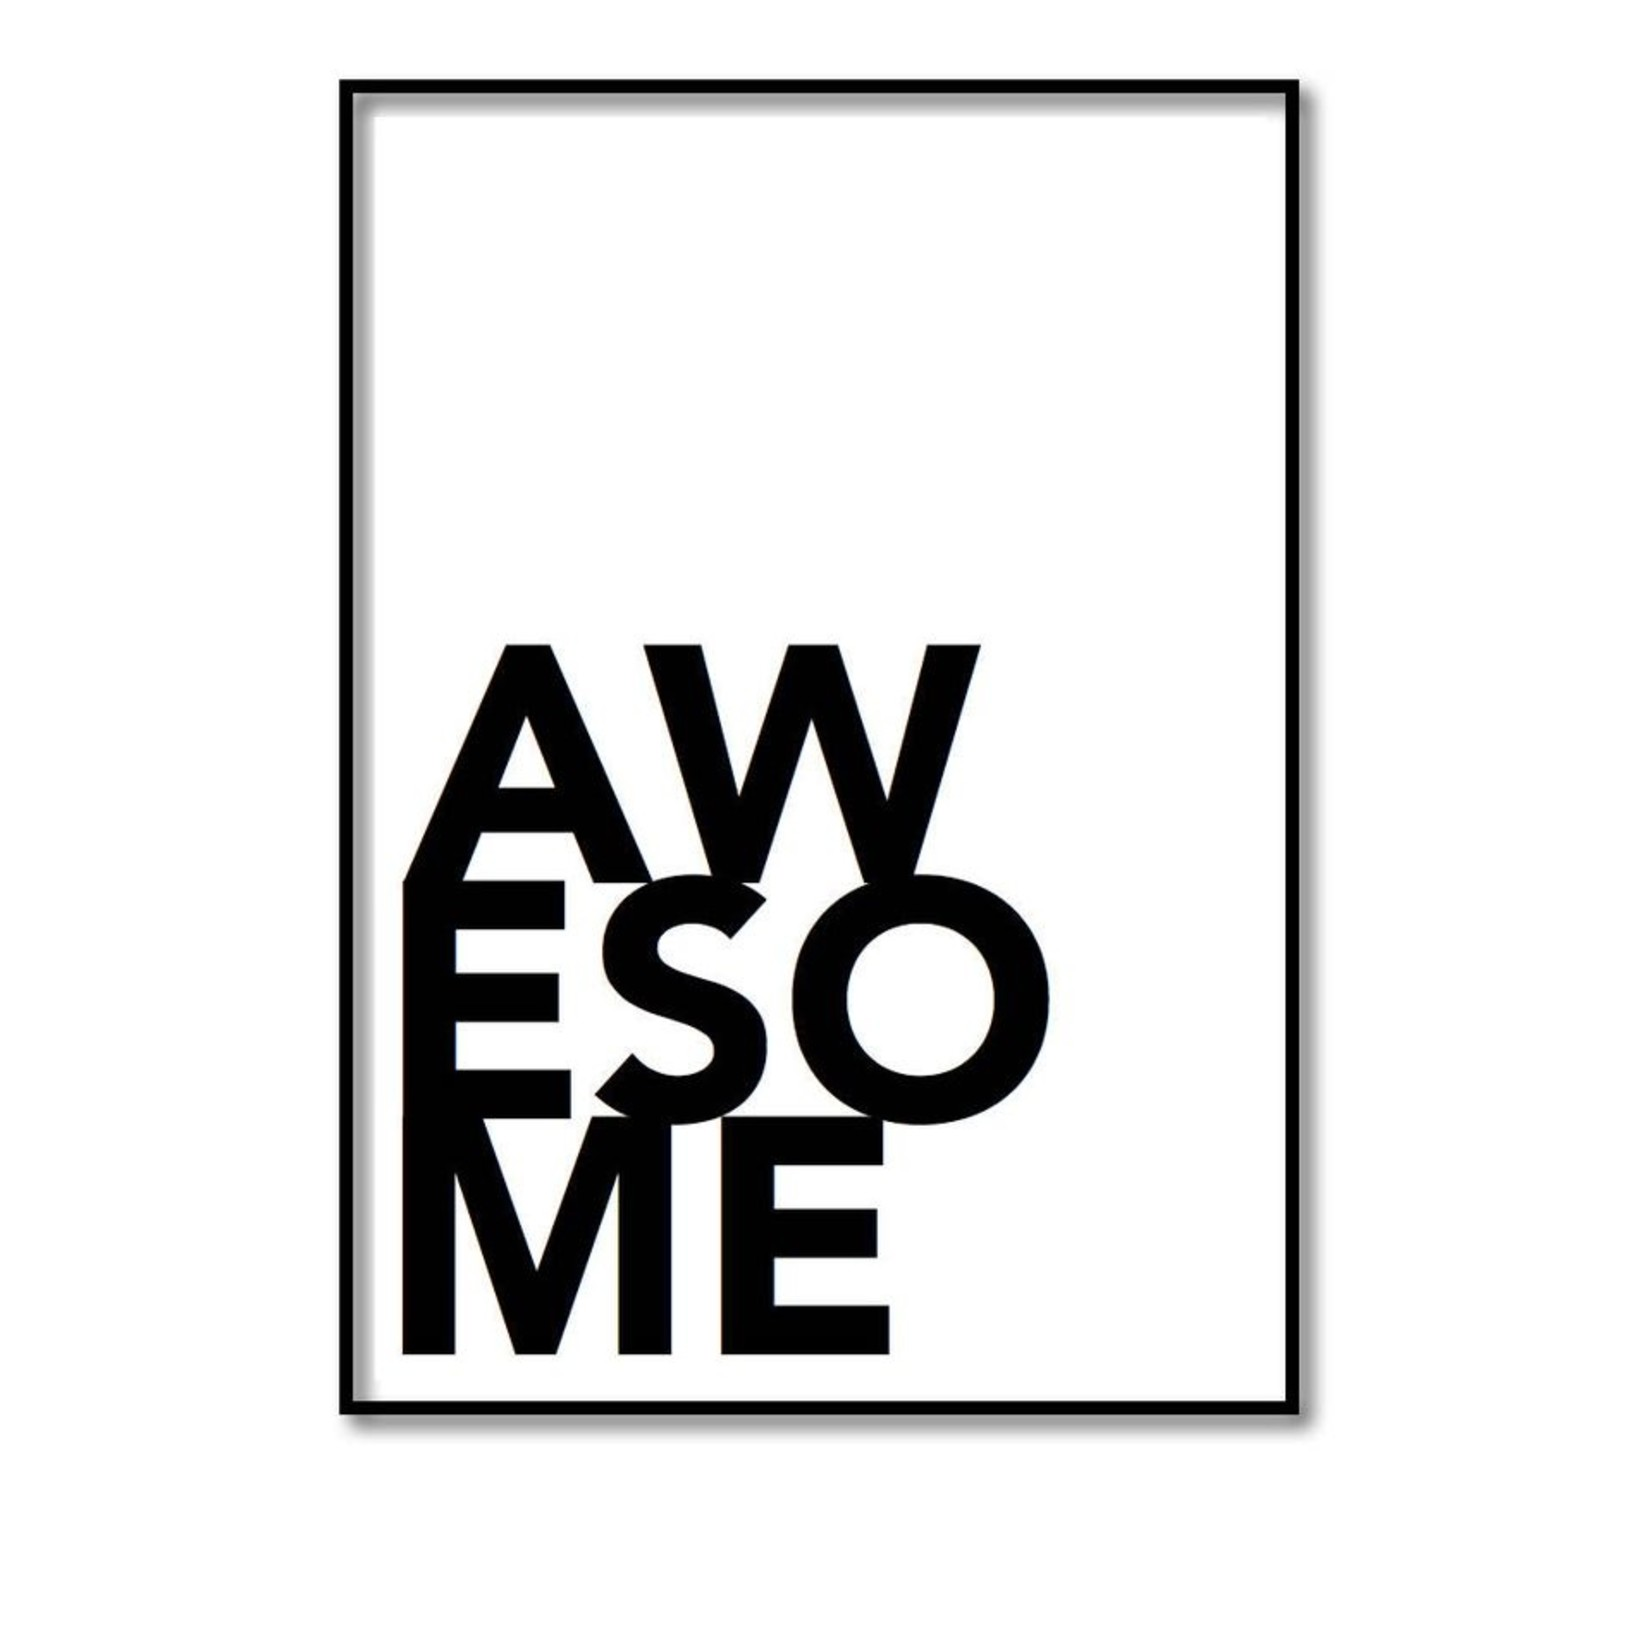 Pixelposter - Awesome (A4)